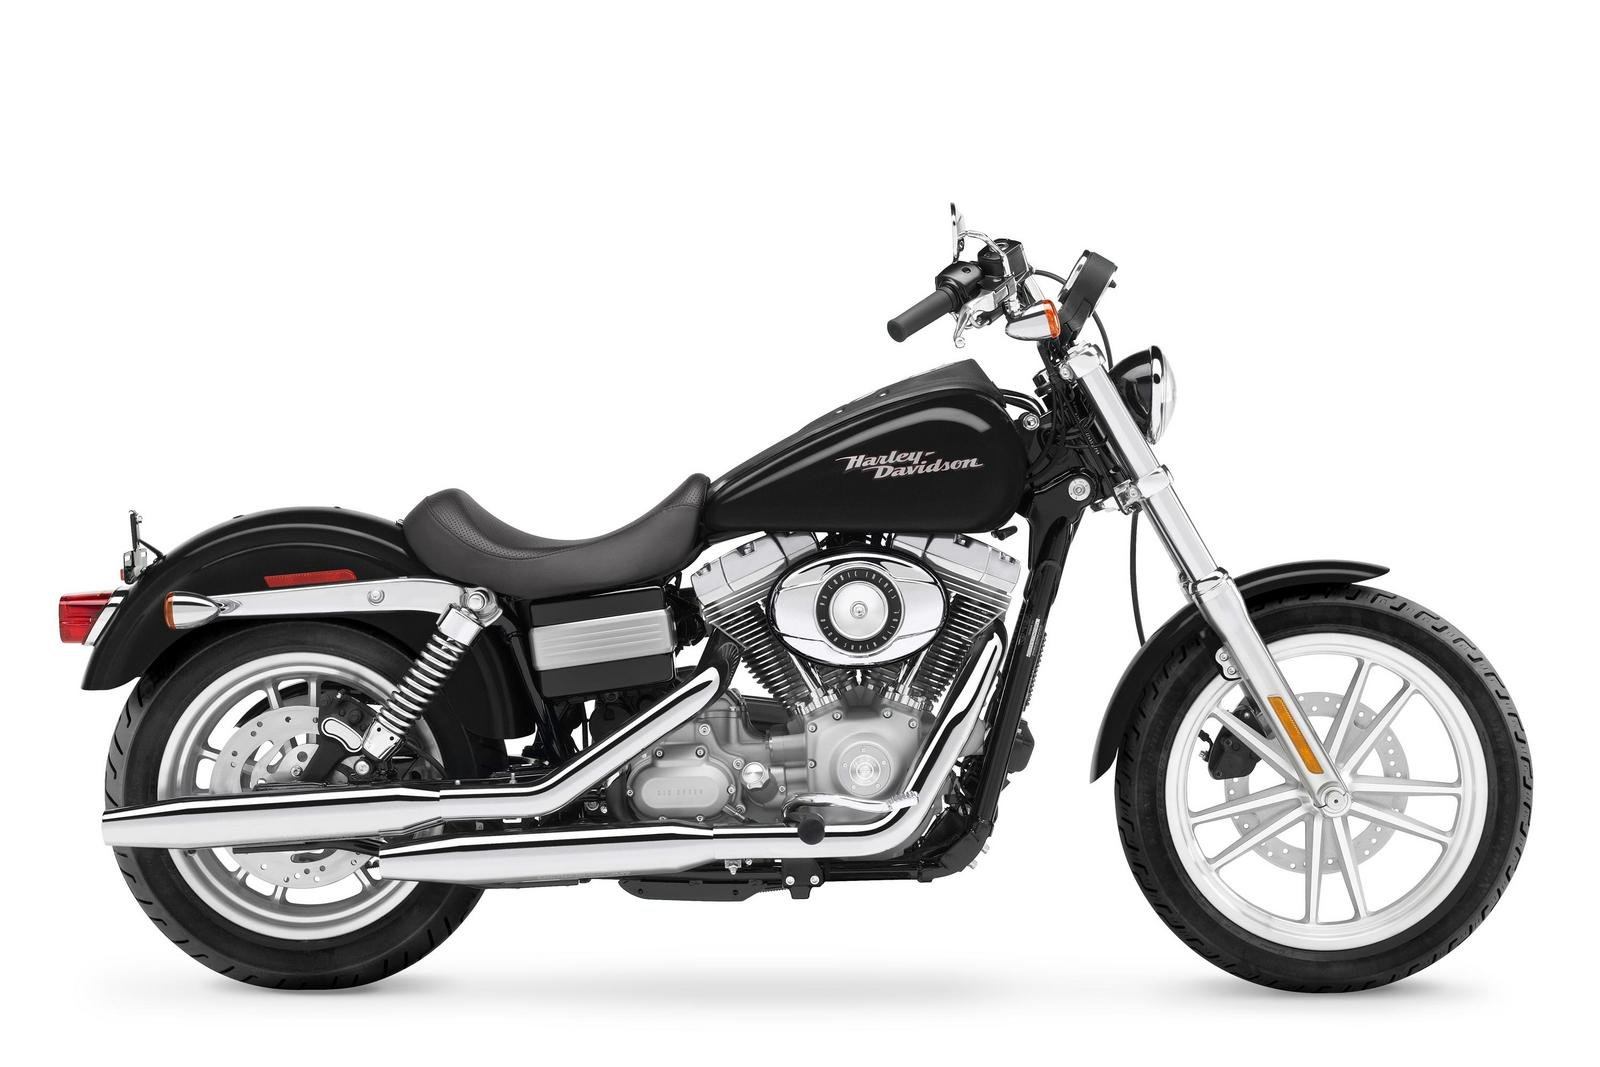 2007 harley davidson fxd dyna super glide review top speed. Black Bedroom Furniture Sets. Home Design Ideas